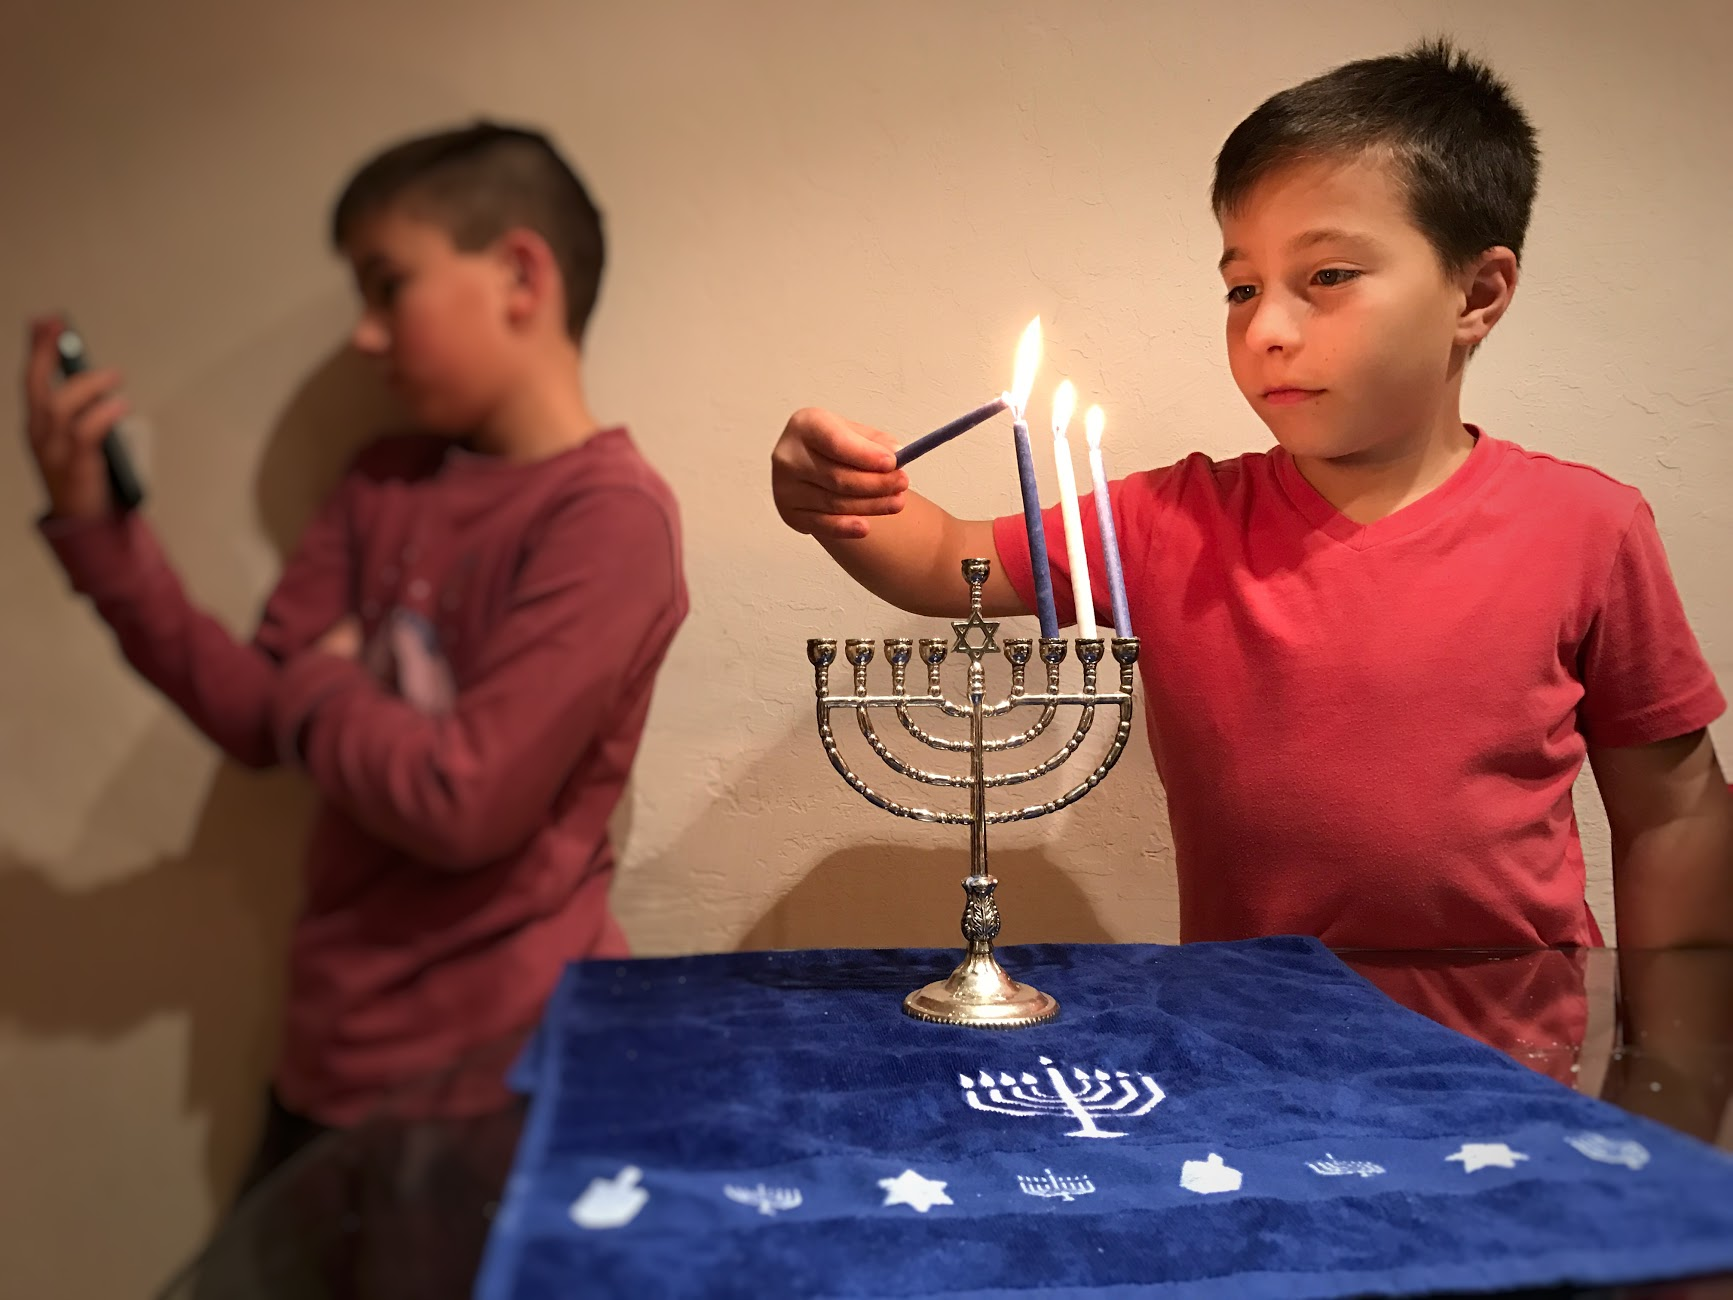 A 9-year-old boy is lighting a Menorah while the other is in the back on a device because he doesn't find it important.